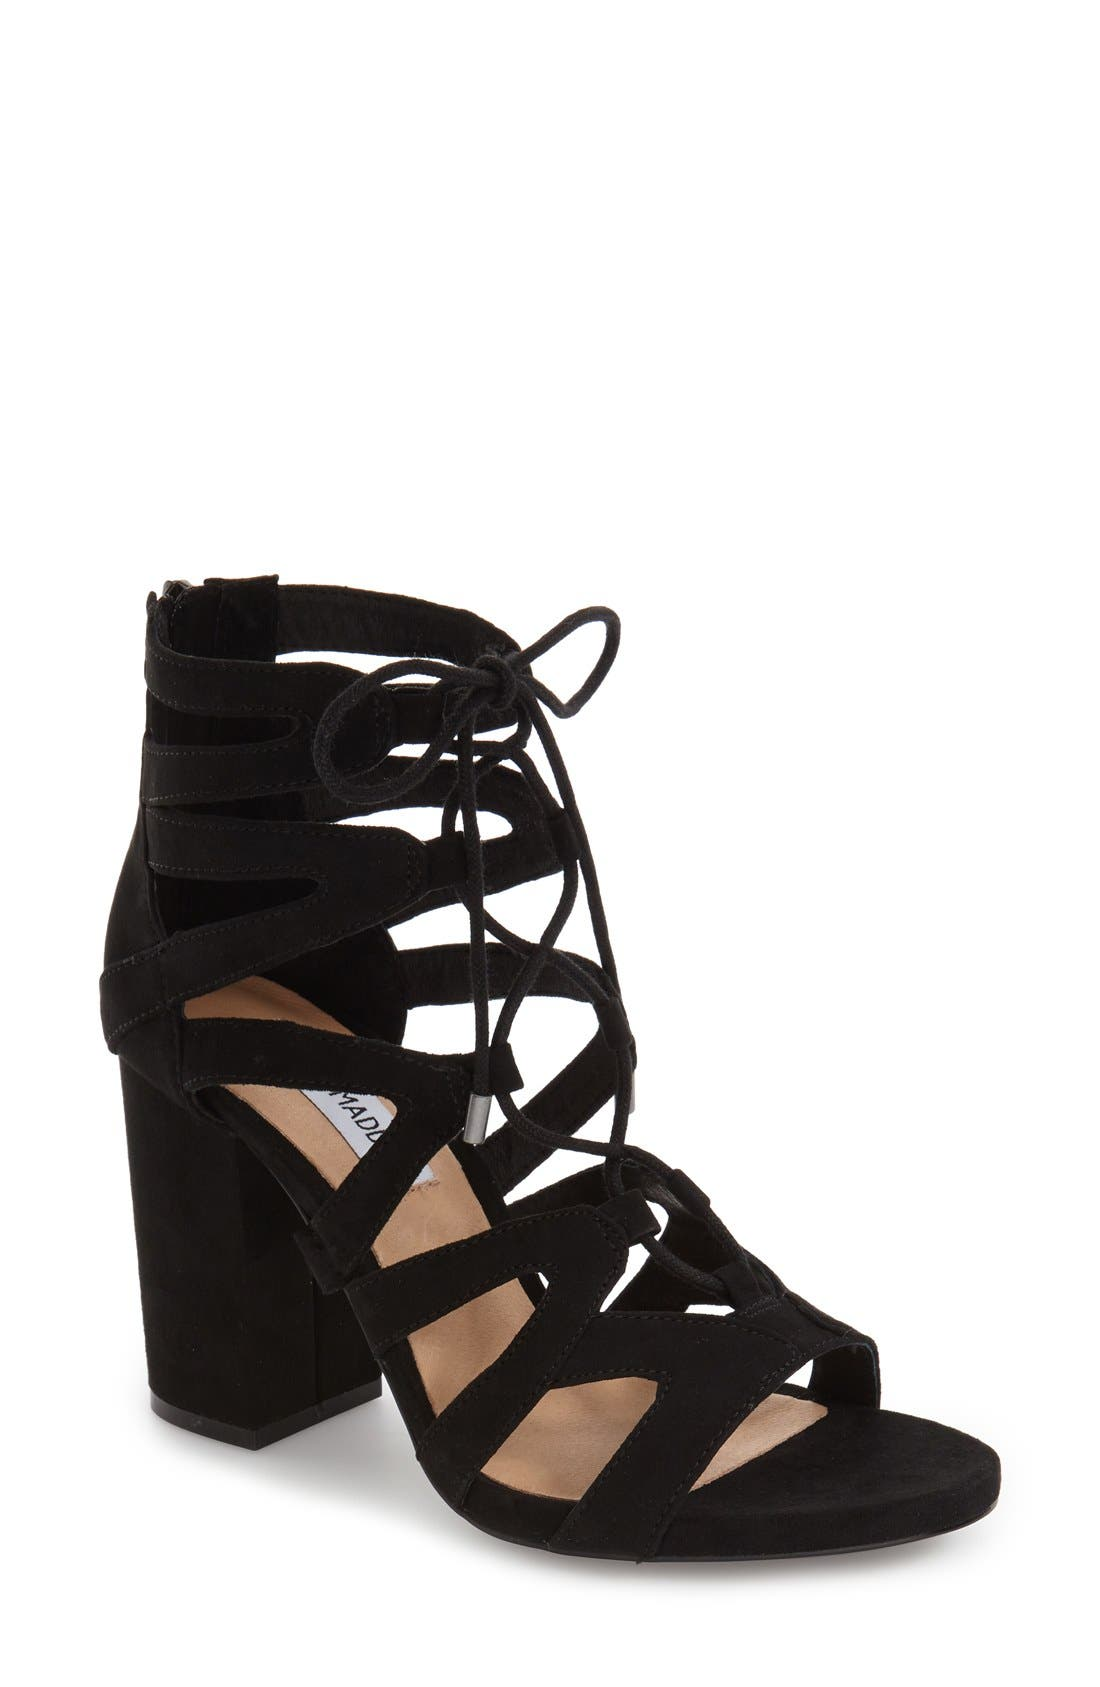 Main Image - Steve Madden 'Gal' Strappy Lace-Up Sandal (Women)